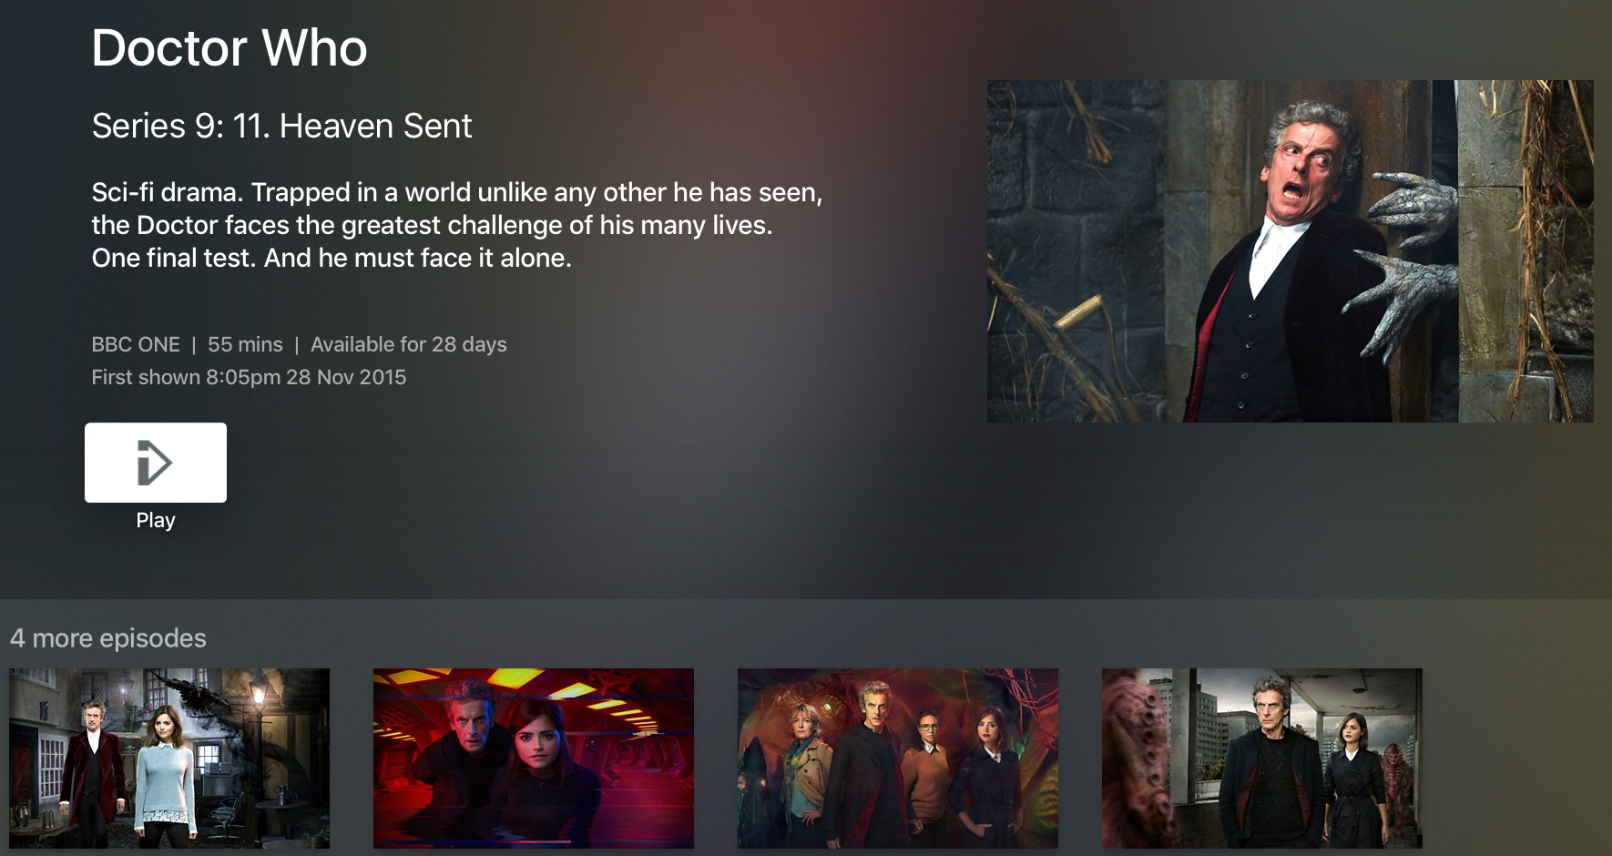 BBC iPlayer comes to Apple TV in the UK